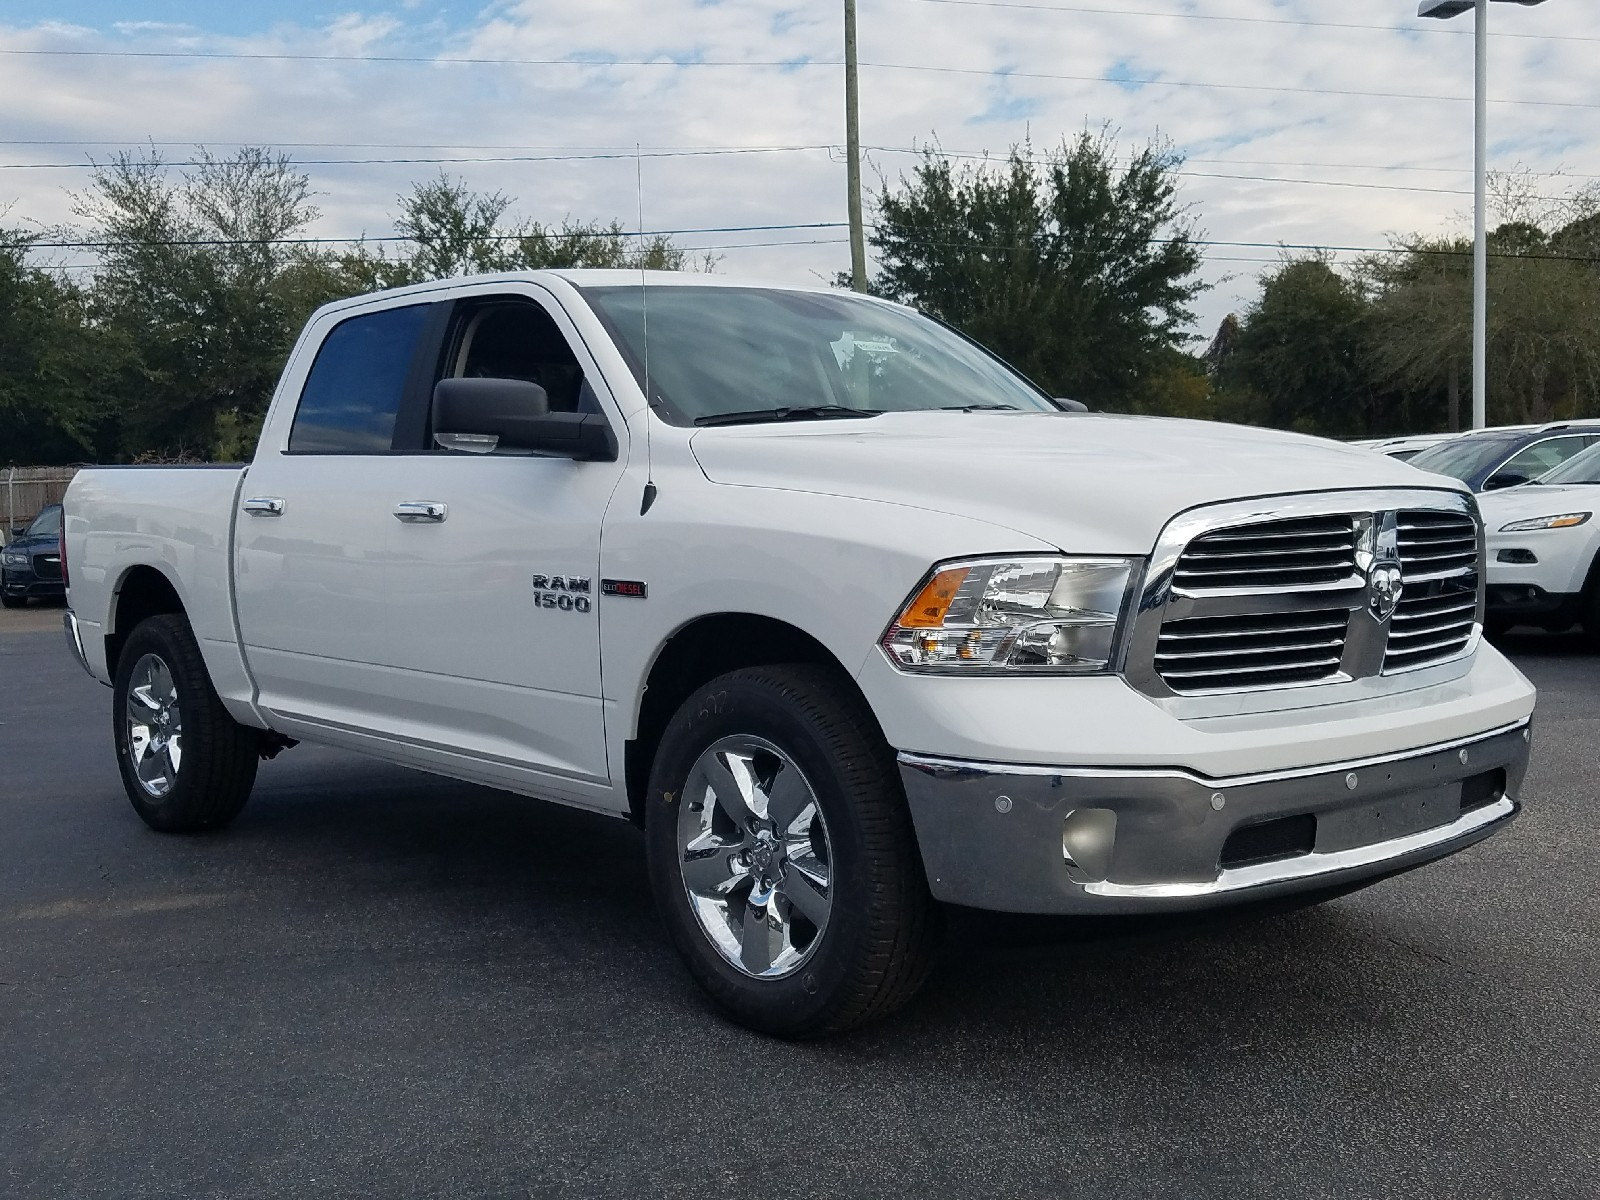 2017 Ram 1500 Crew Cab 4x4, Pickup #R878308 - photo 3